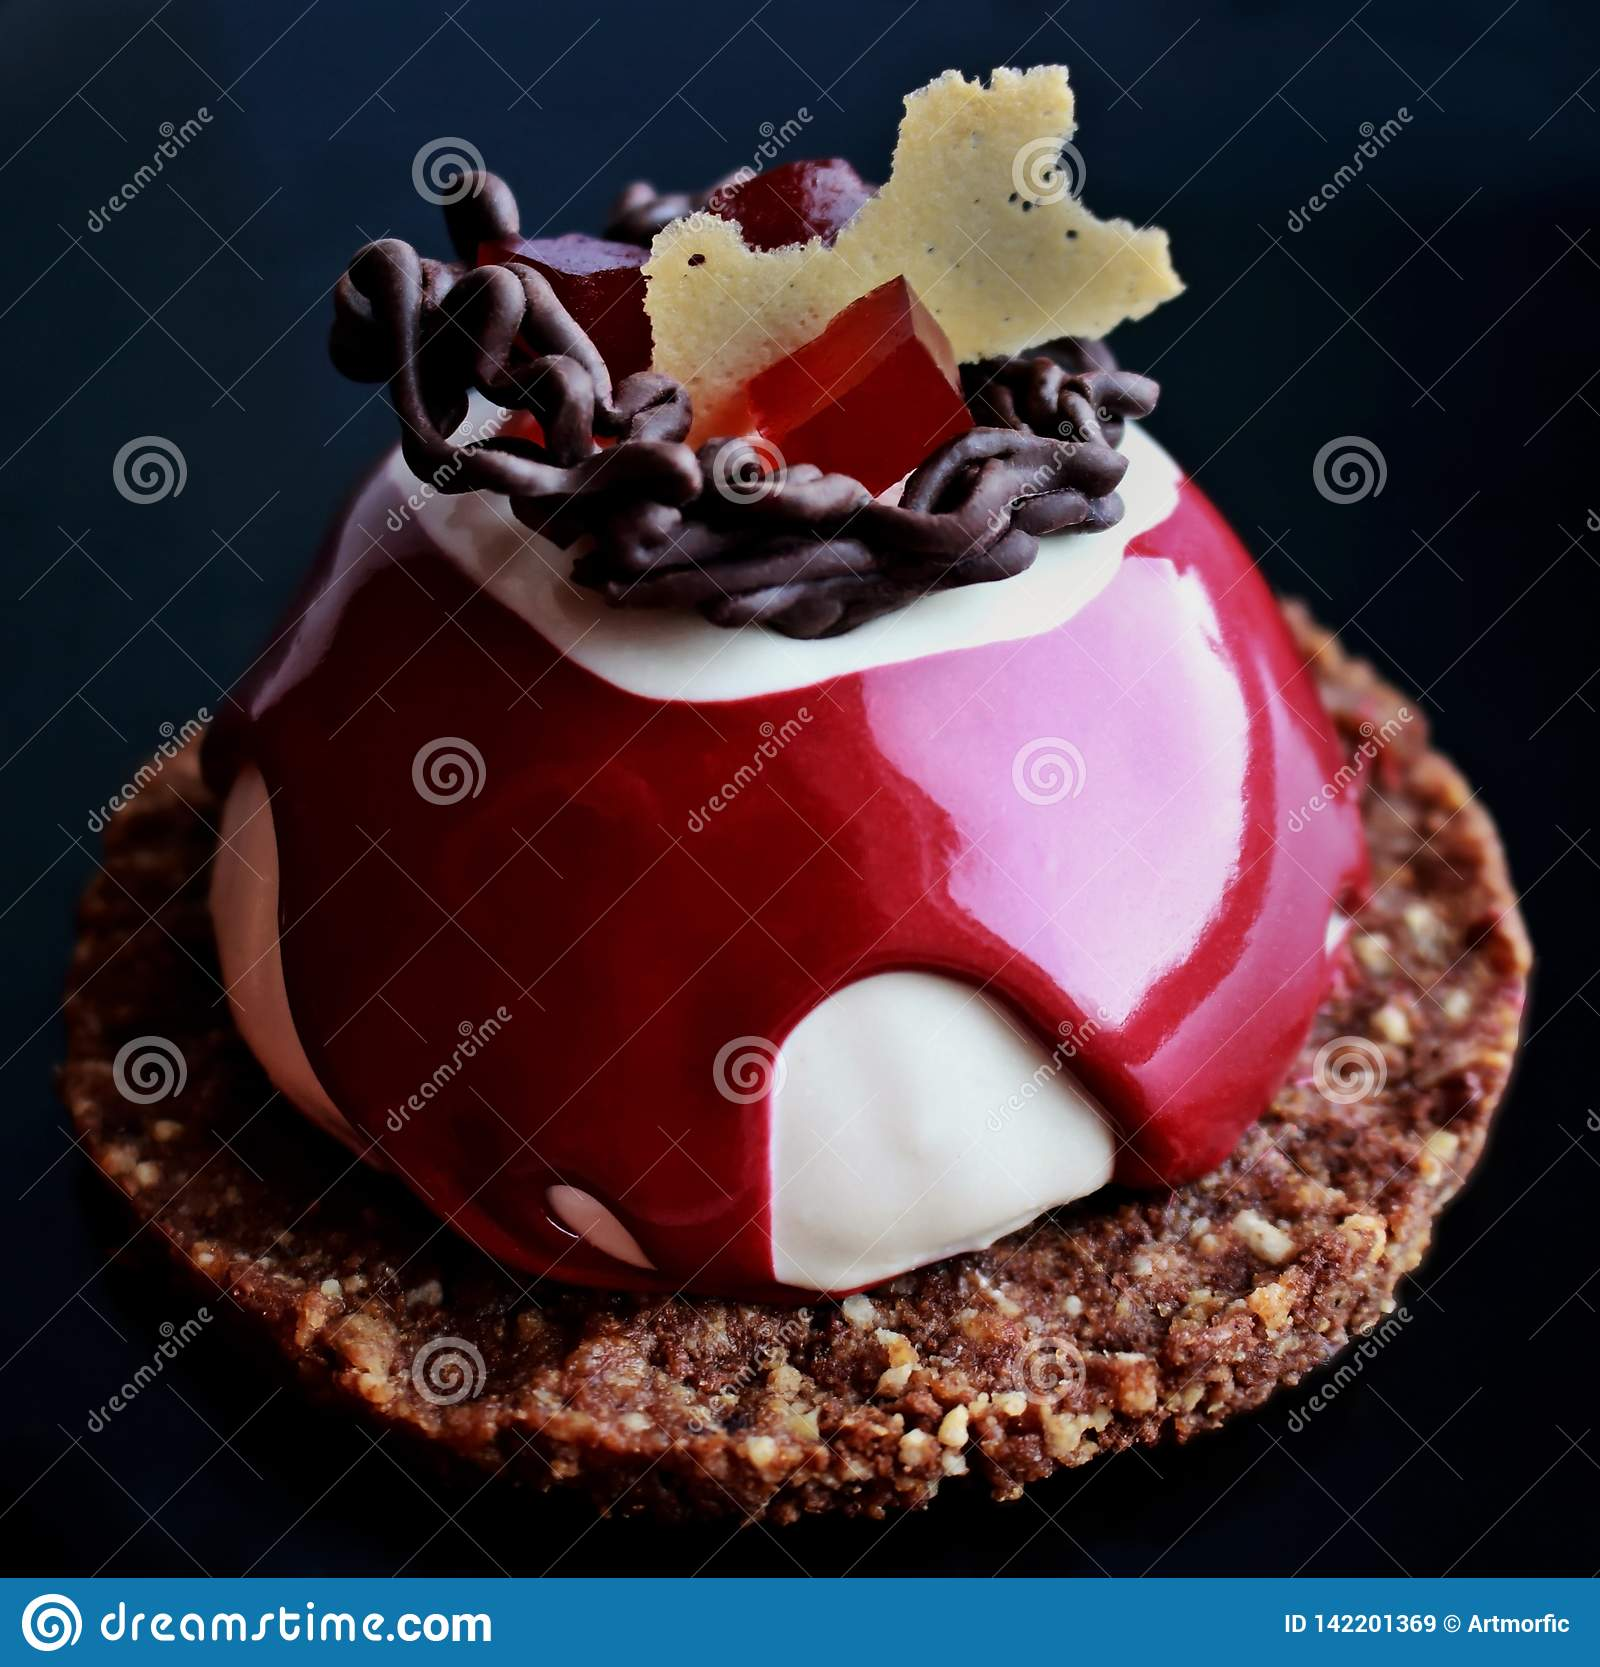 Red and white dessert with chocolate decoration, red jelly and cookie base